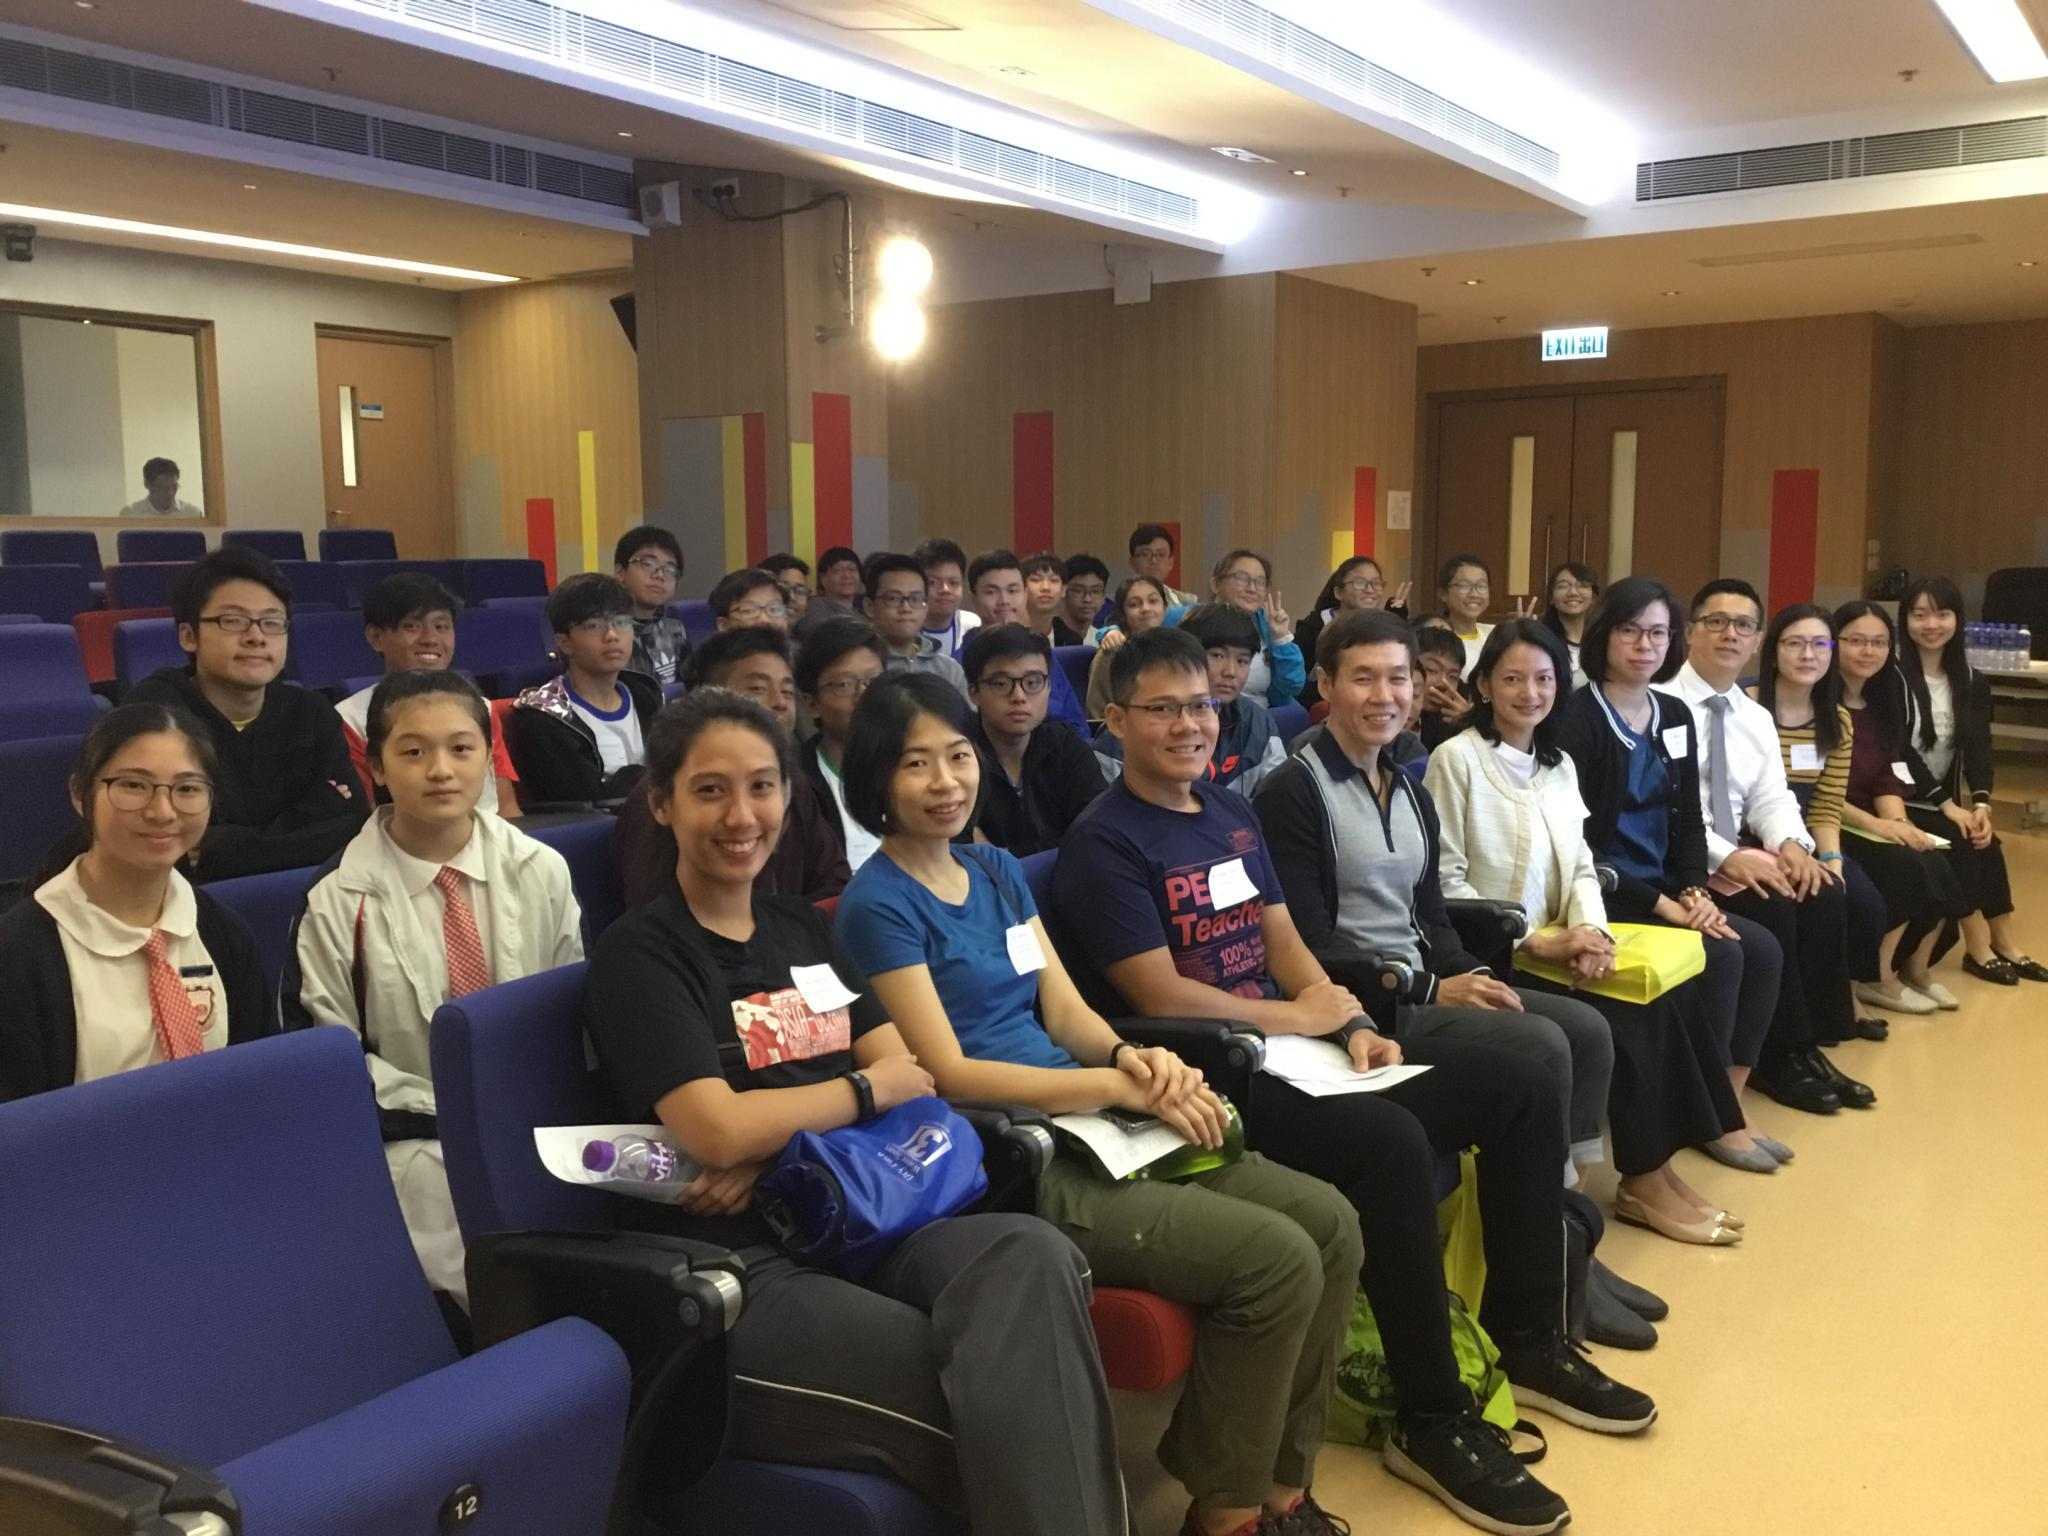 A group photo was taken inside Irene Yu Lecture Theatre.